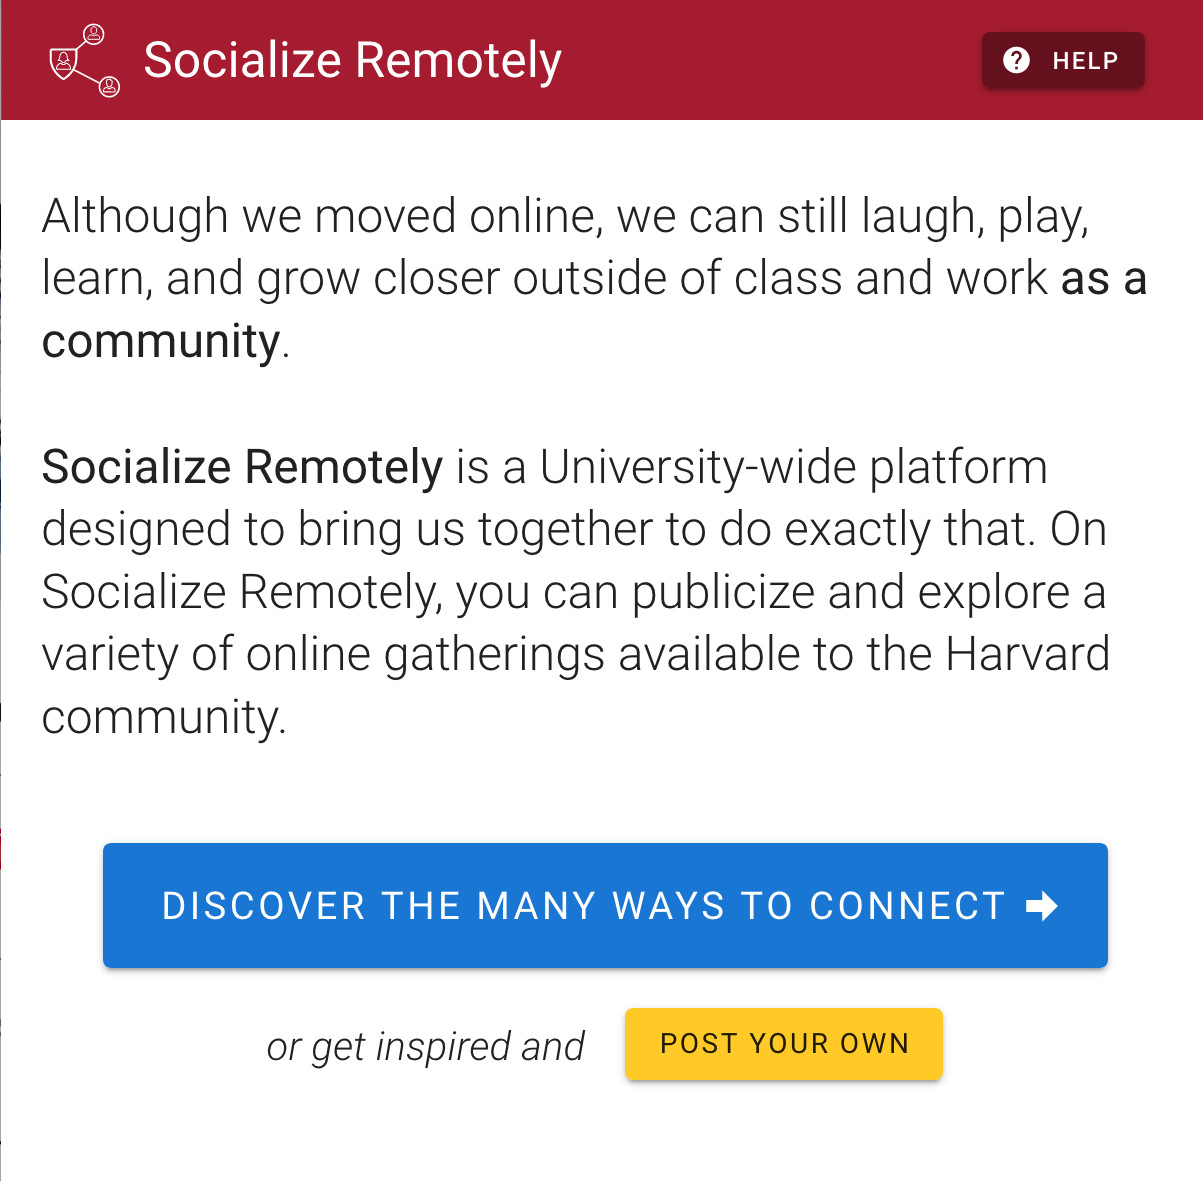 socializeremotely